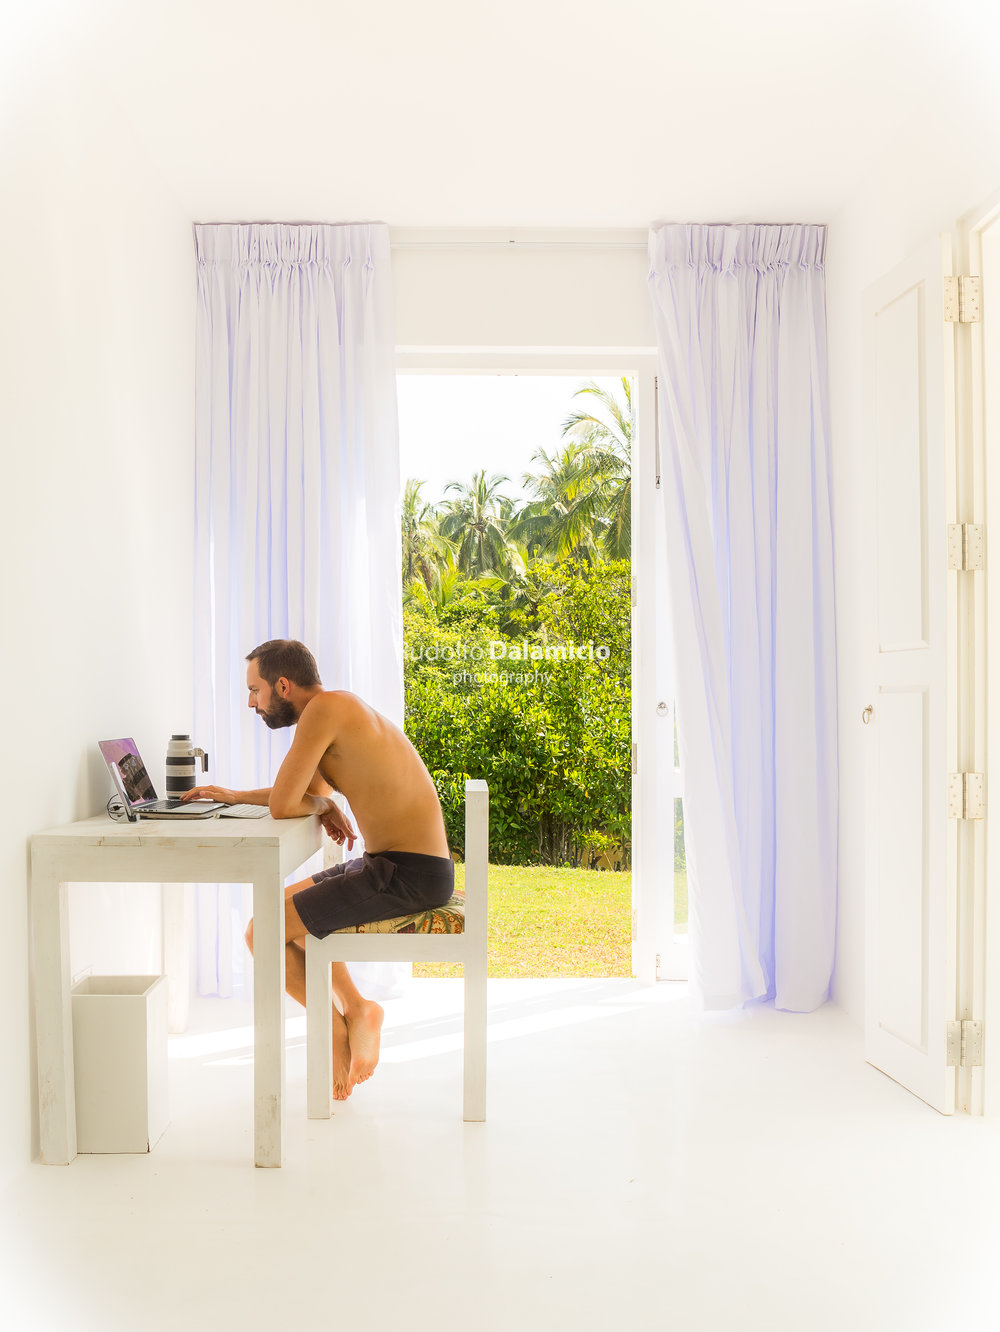 Working from paradise - After making the pictures, I do some editing in LR adobe. Love that.